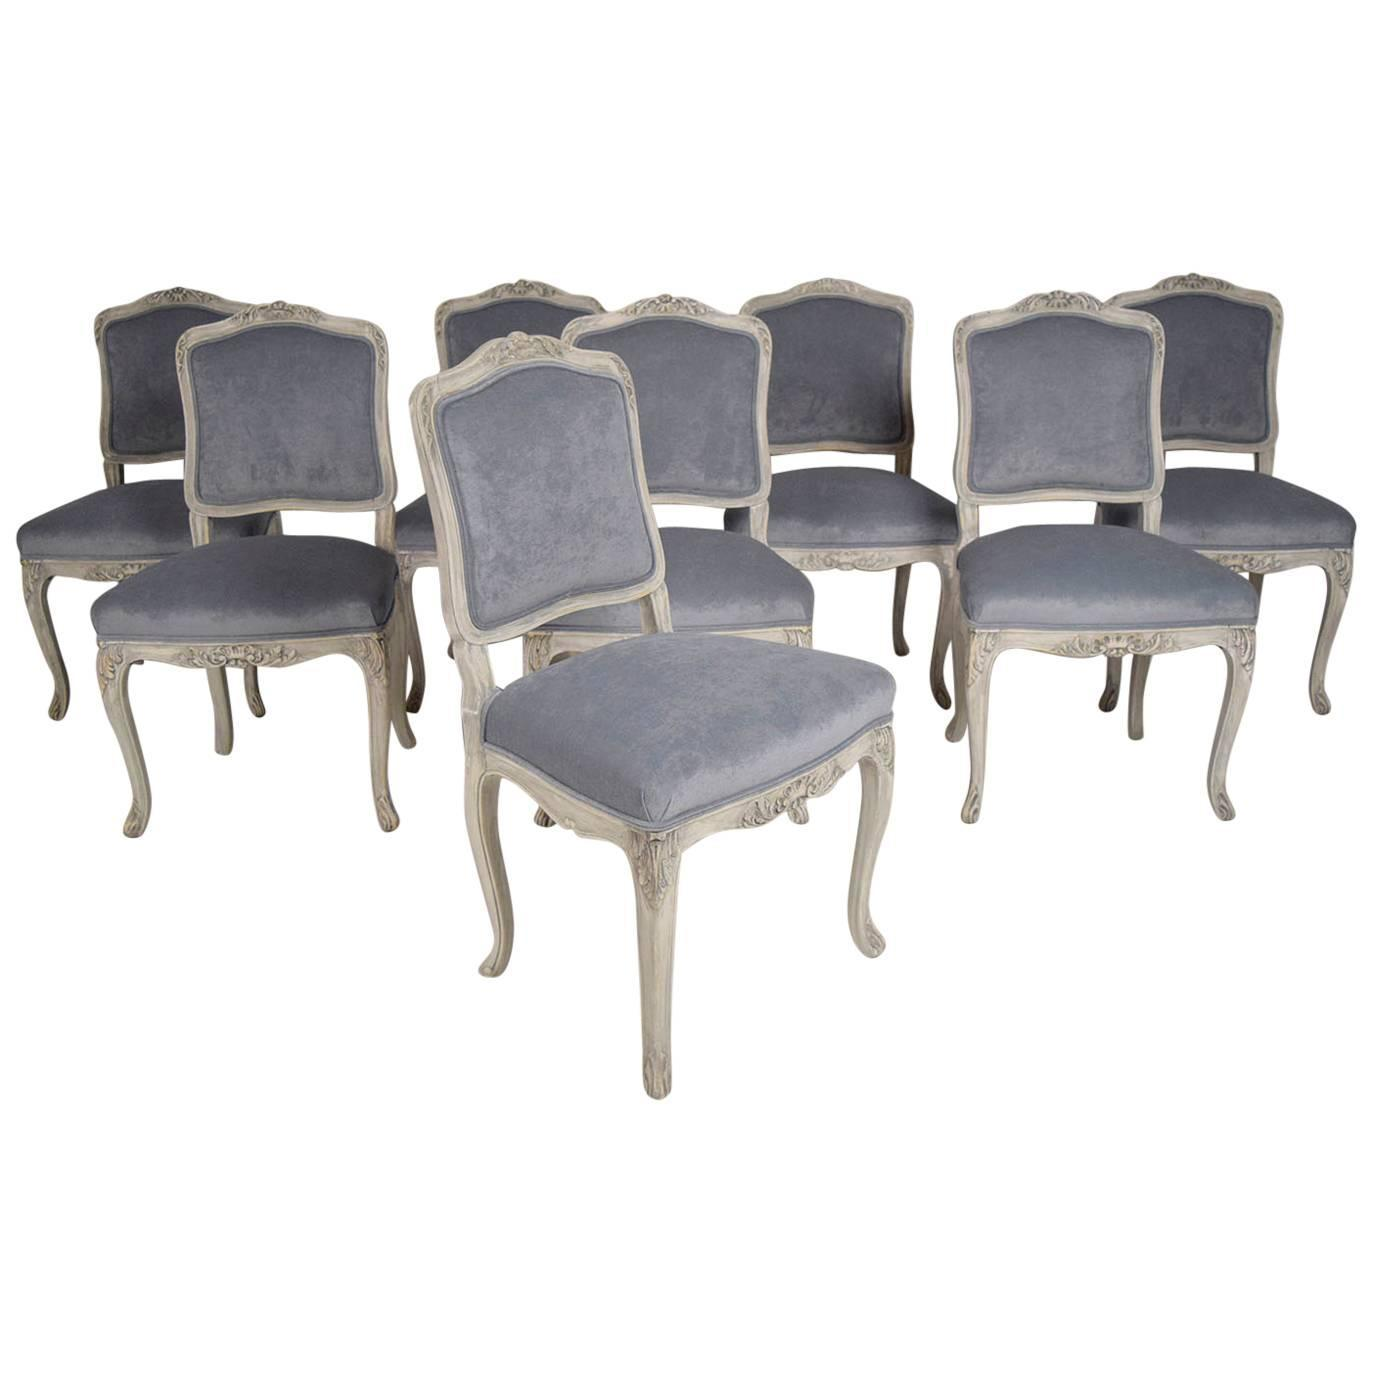 Louis xv dining chair - Set Of Eight French Louis Xv Dining Chairs